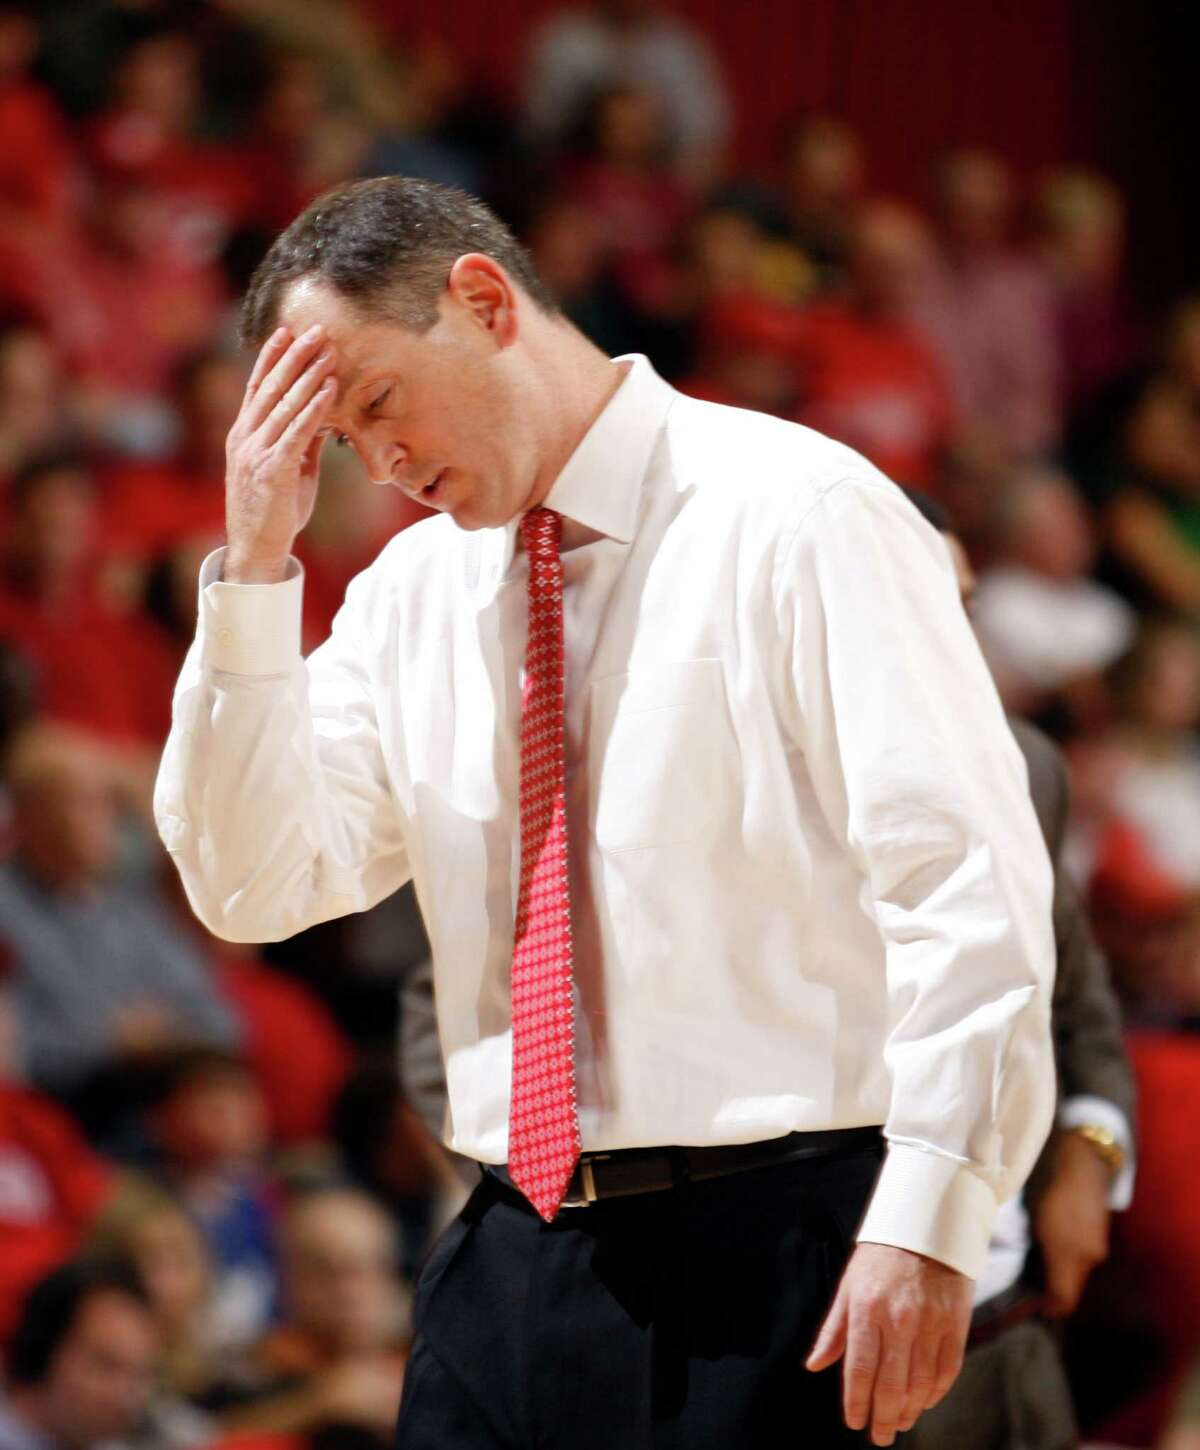 Rutgers Head Coach Mike Rice rubs his head after calling a timeout against Miami during the second half at the Rutgers Athletic Center in Piscataway, NJ on 11/21/10. (Frank H. Conlon/For The Star-Ledger) TO PURCHASE THIS PHOTO, CALL THE STAR-LEDGER PHOTO LIBRARY AT 973-392-1530